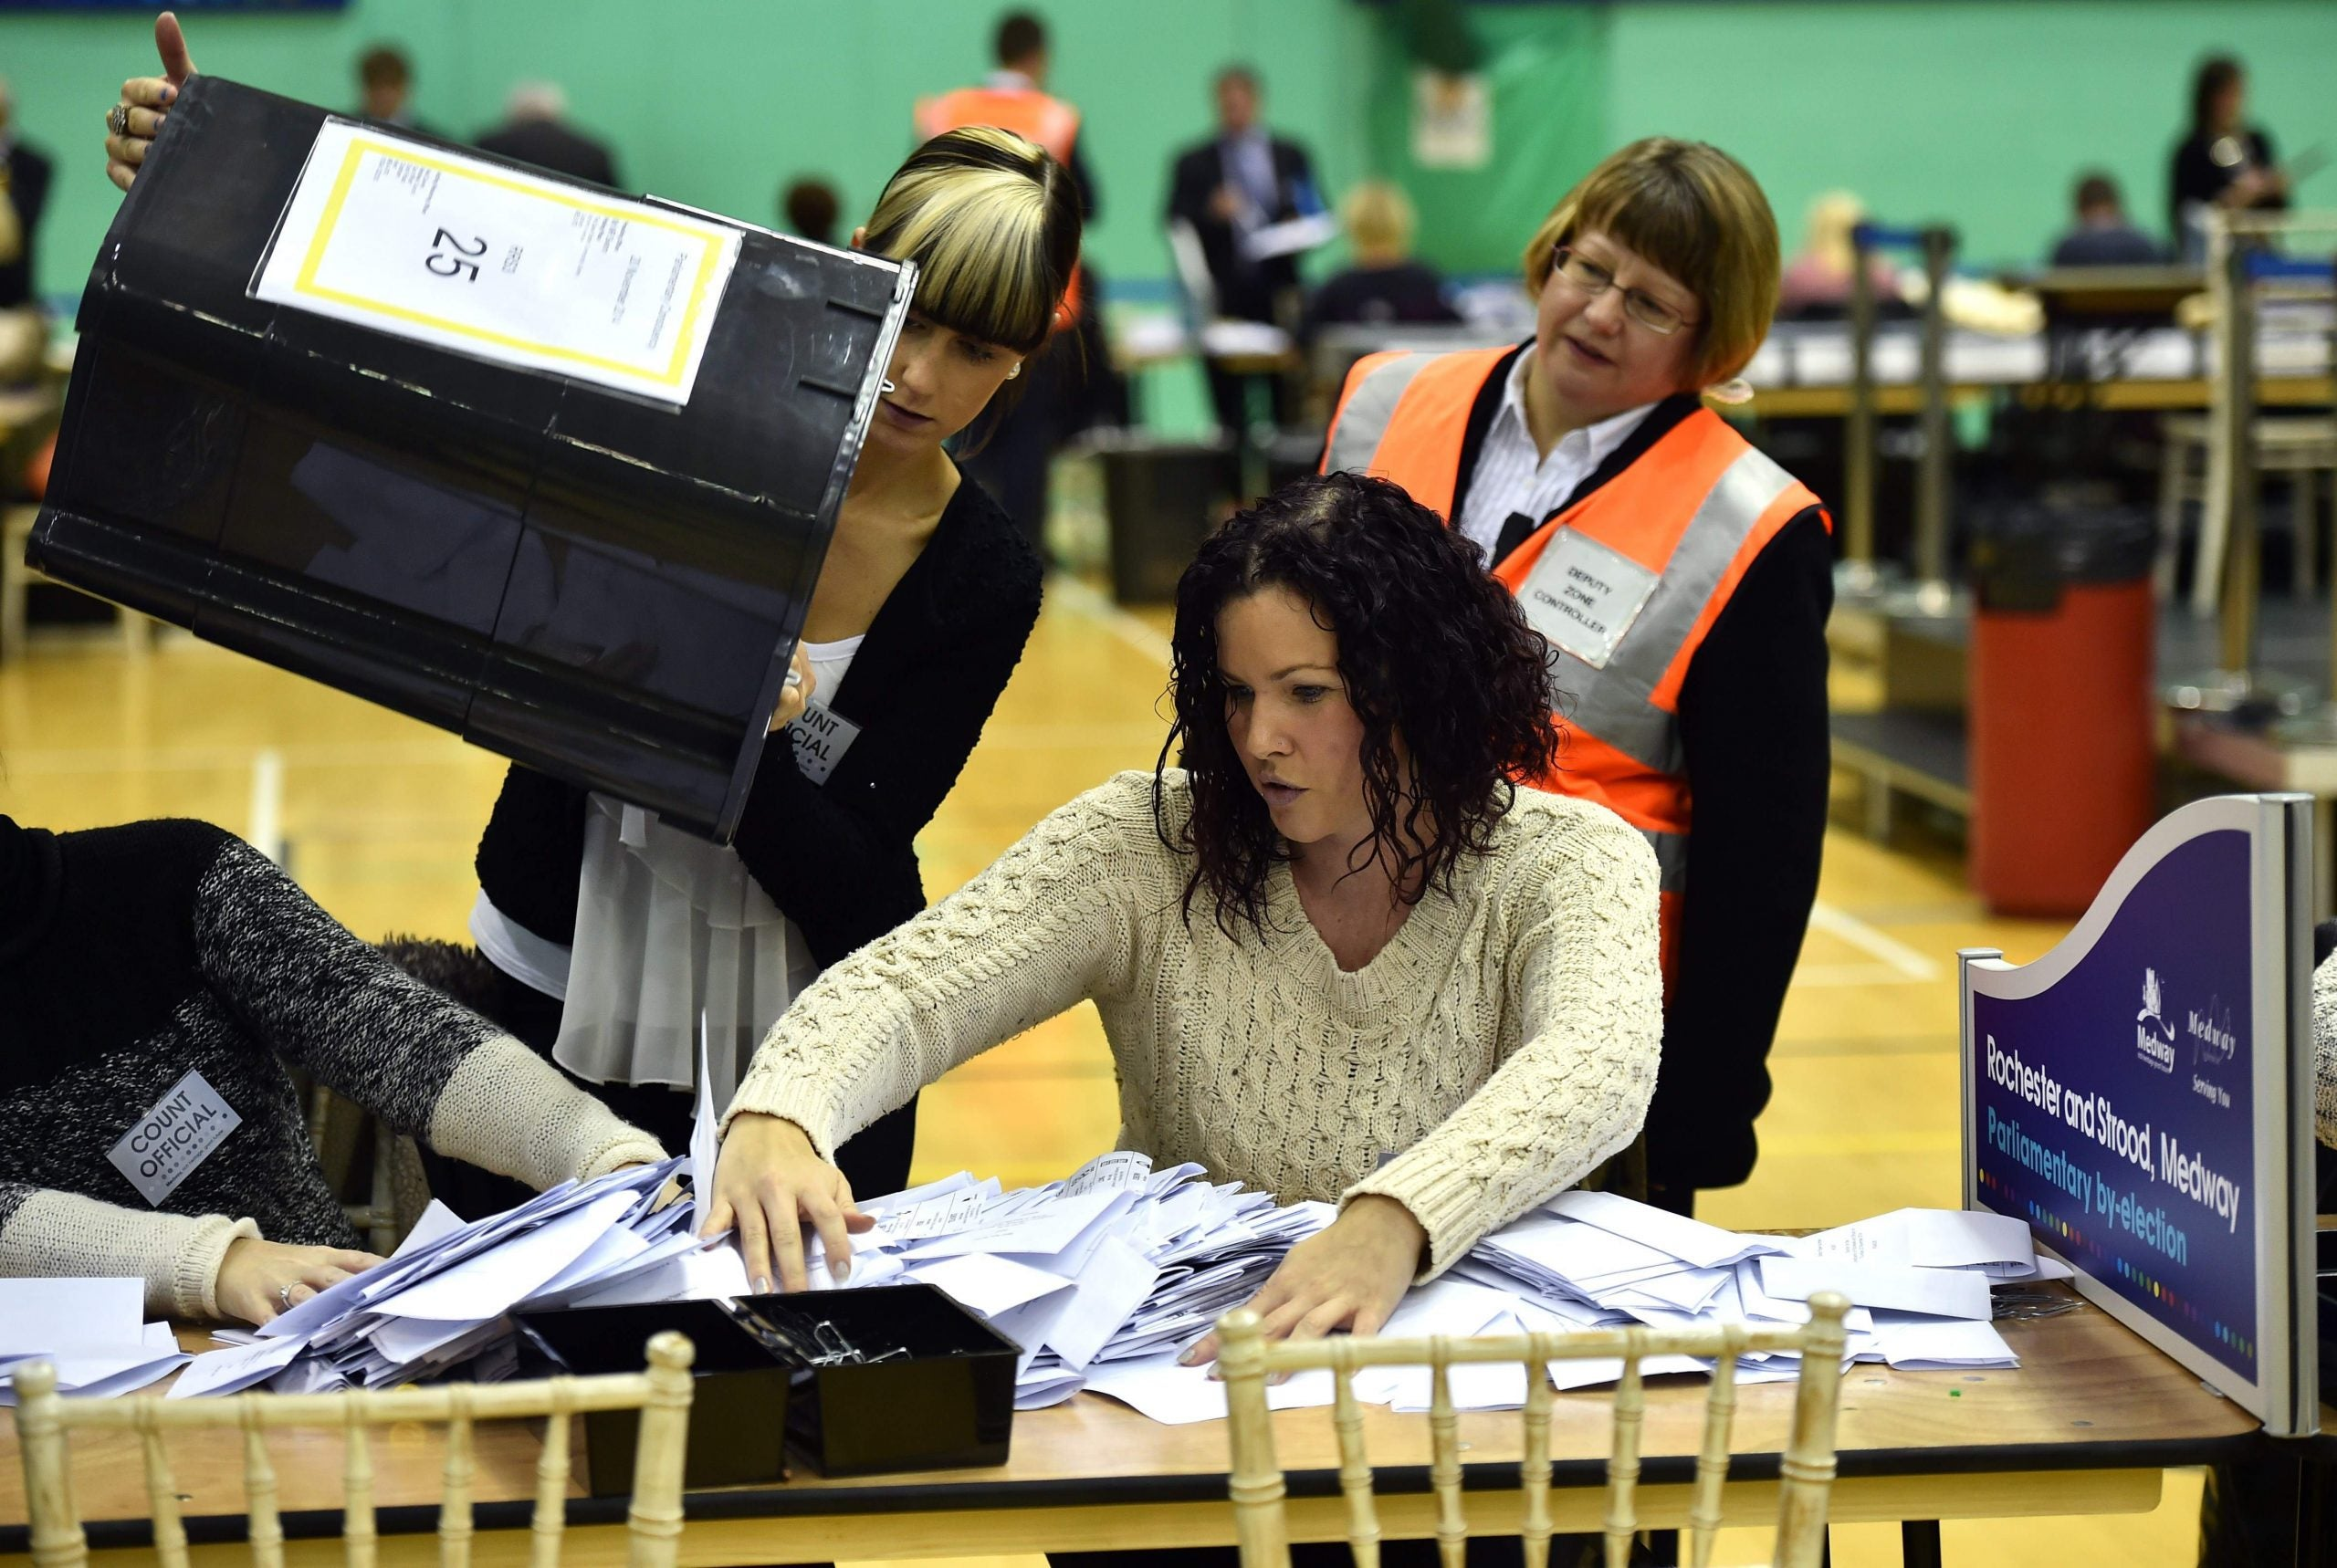 Over 200,000 young people have fallen off the electoral register: time to get them back